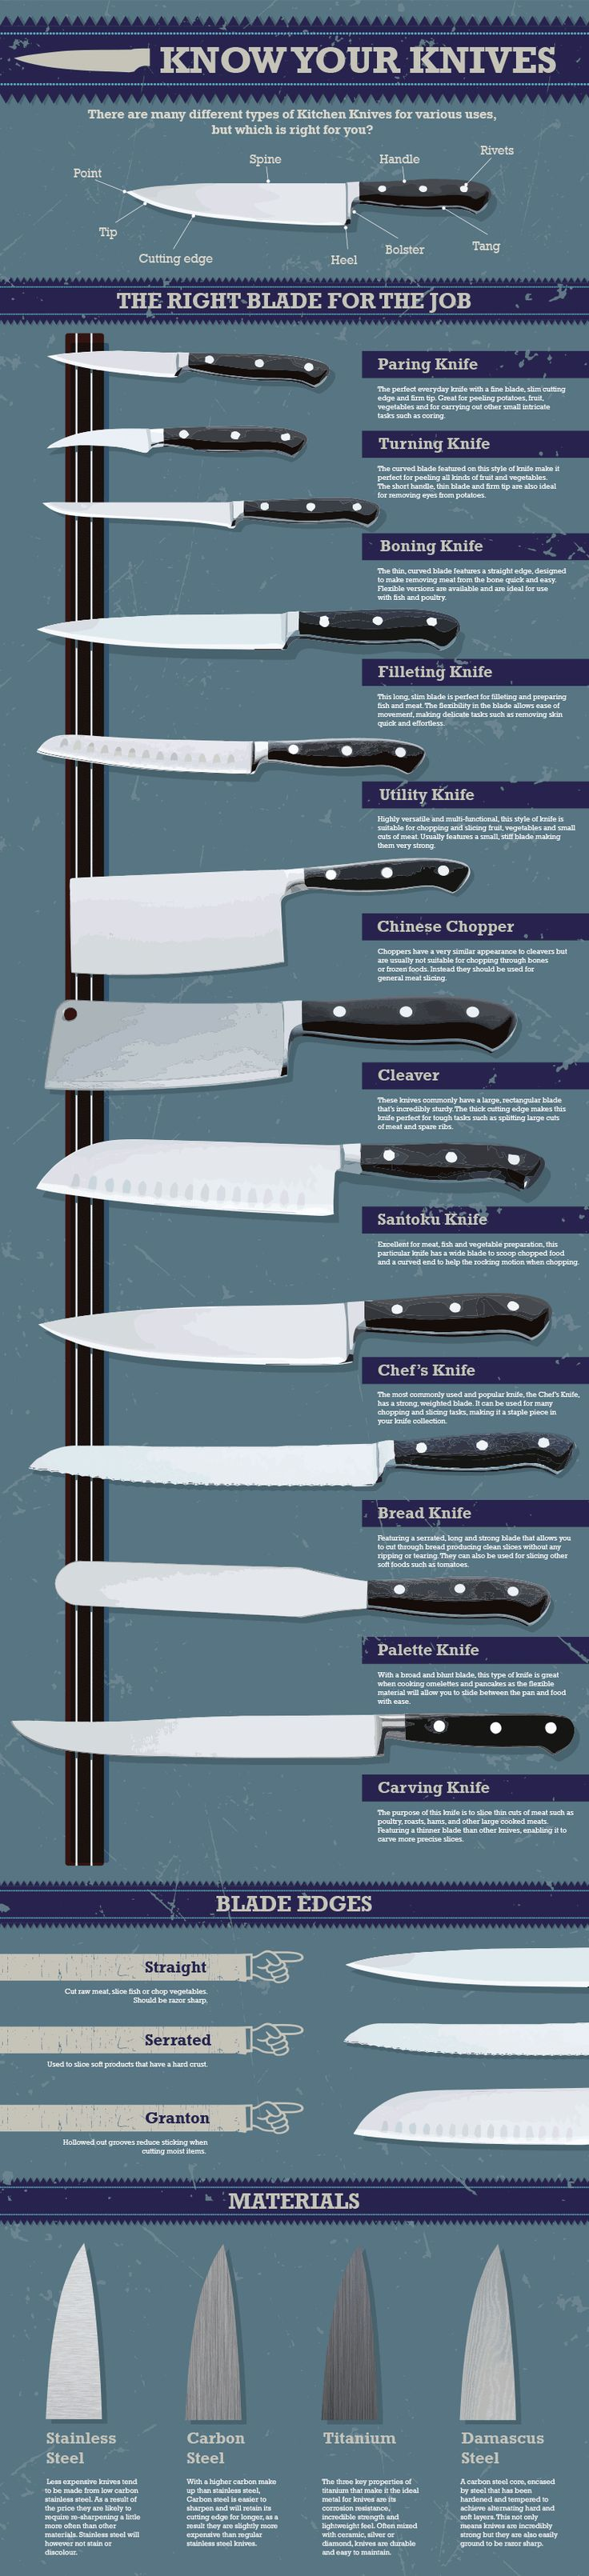 Choosing the right knife can be a choice between brand, weight, materials and purpose, leaving you with a lot to consider. We've put toget...